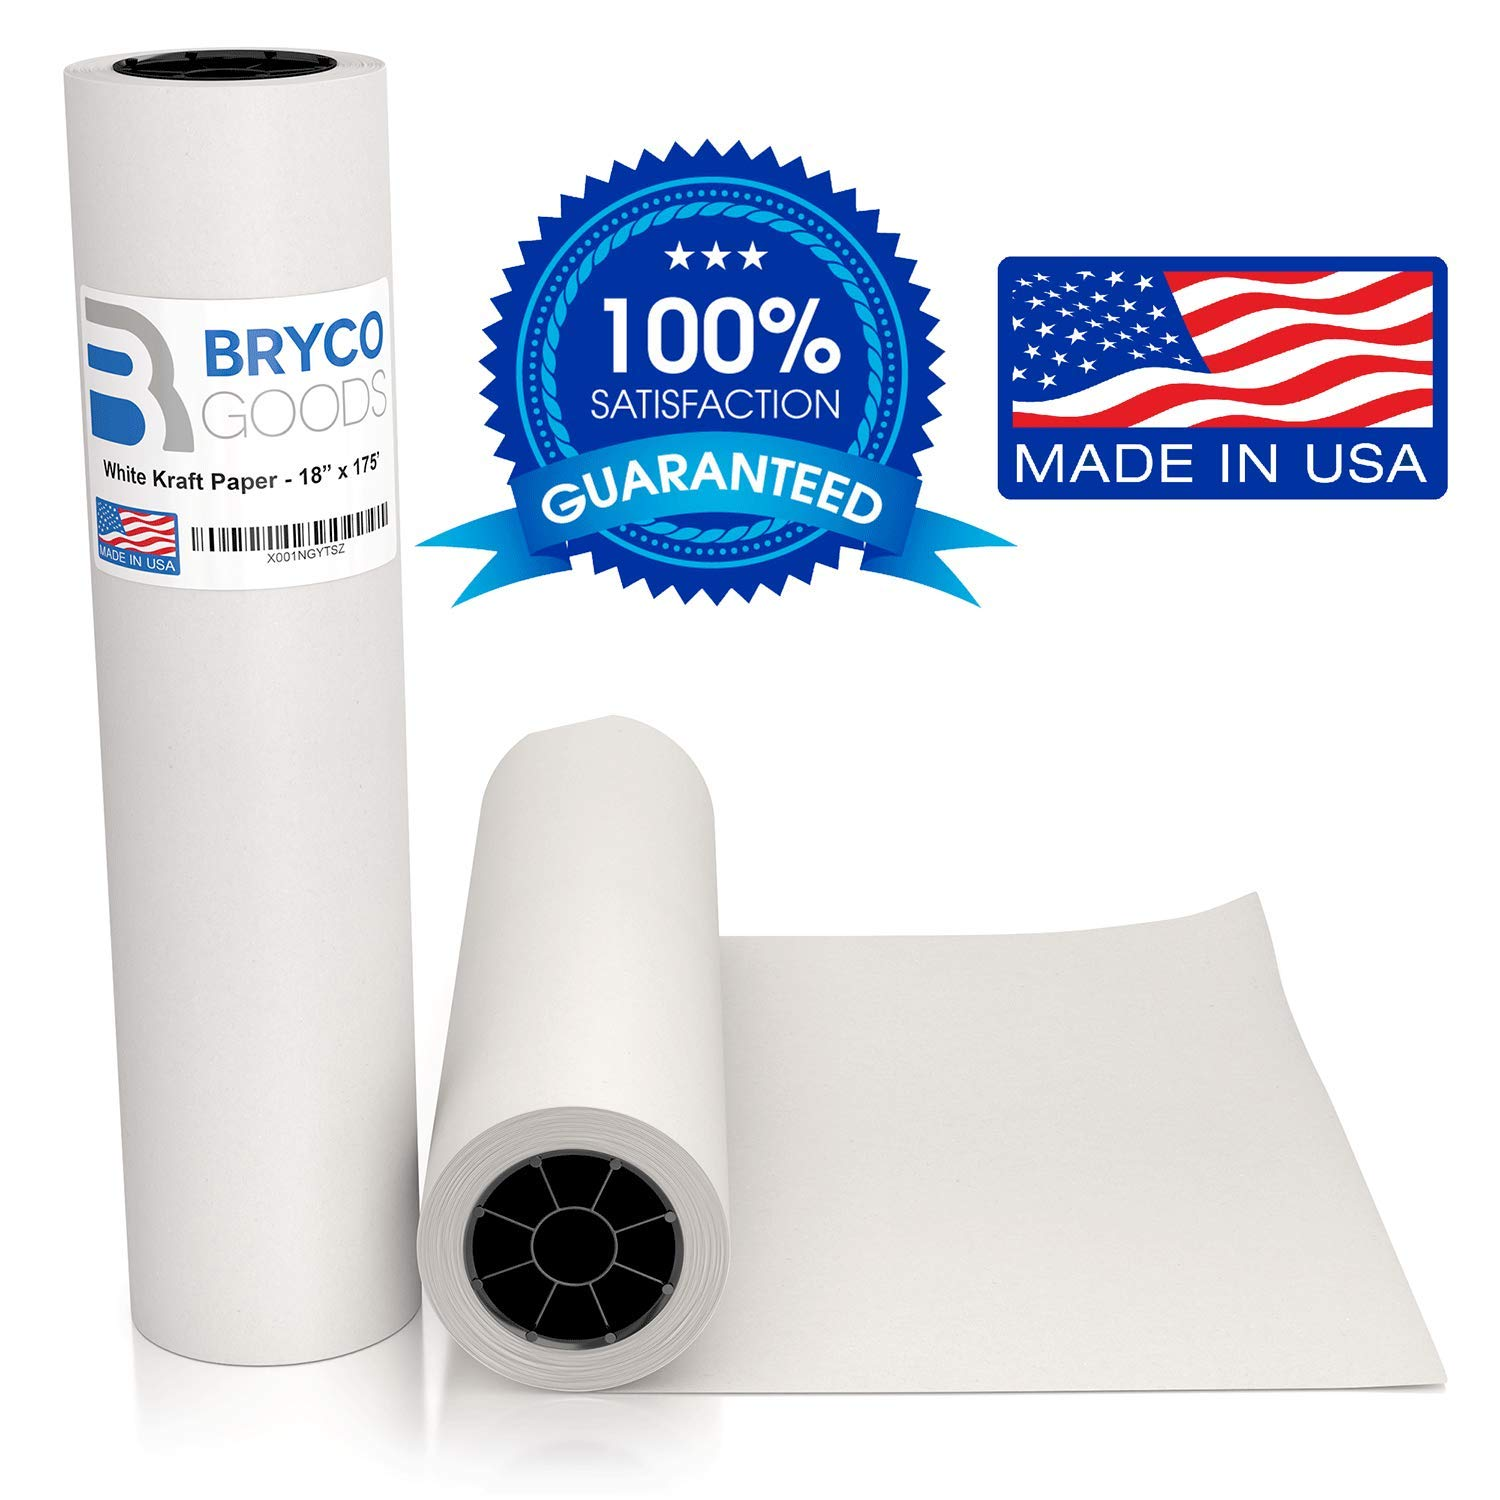 White Kraft Arts and Crafts Paper Roll - 18 inches by 175 Feet (2100 Inch) - Ideal for Paints, Wall Art, Easel Paper, Fadeless Bulletin Board Paper, Gift Wrapping Paper and Kids Crafts - Made in USA by Bryco Goods